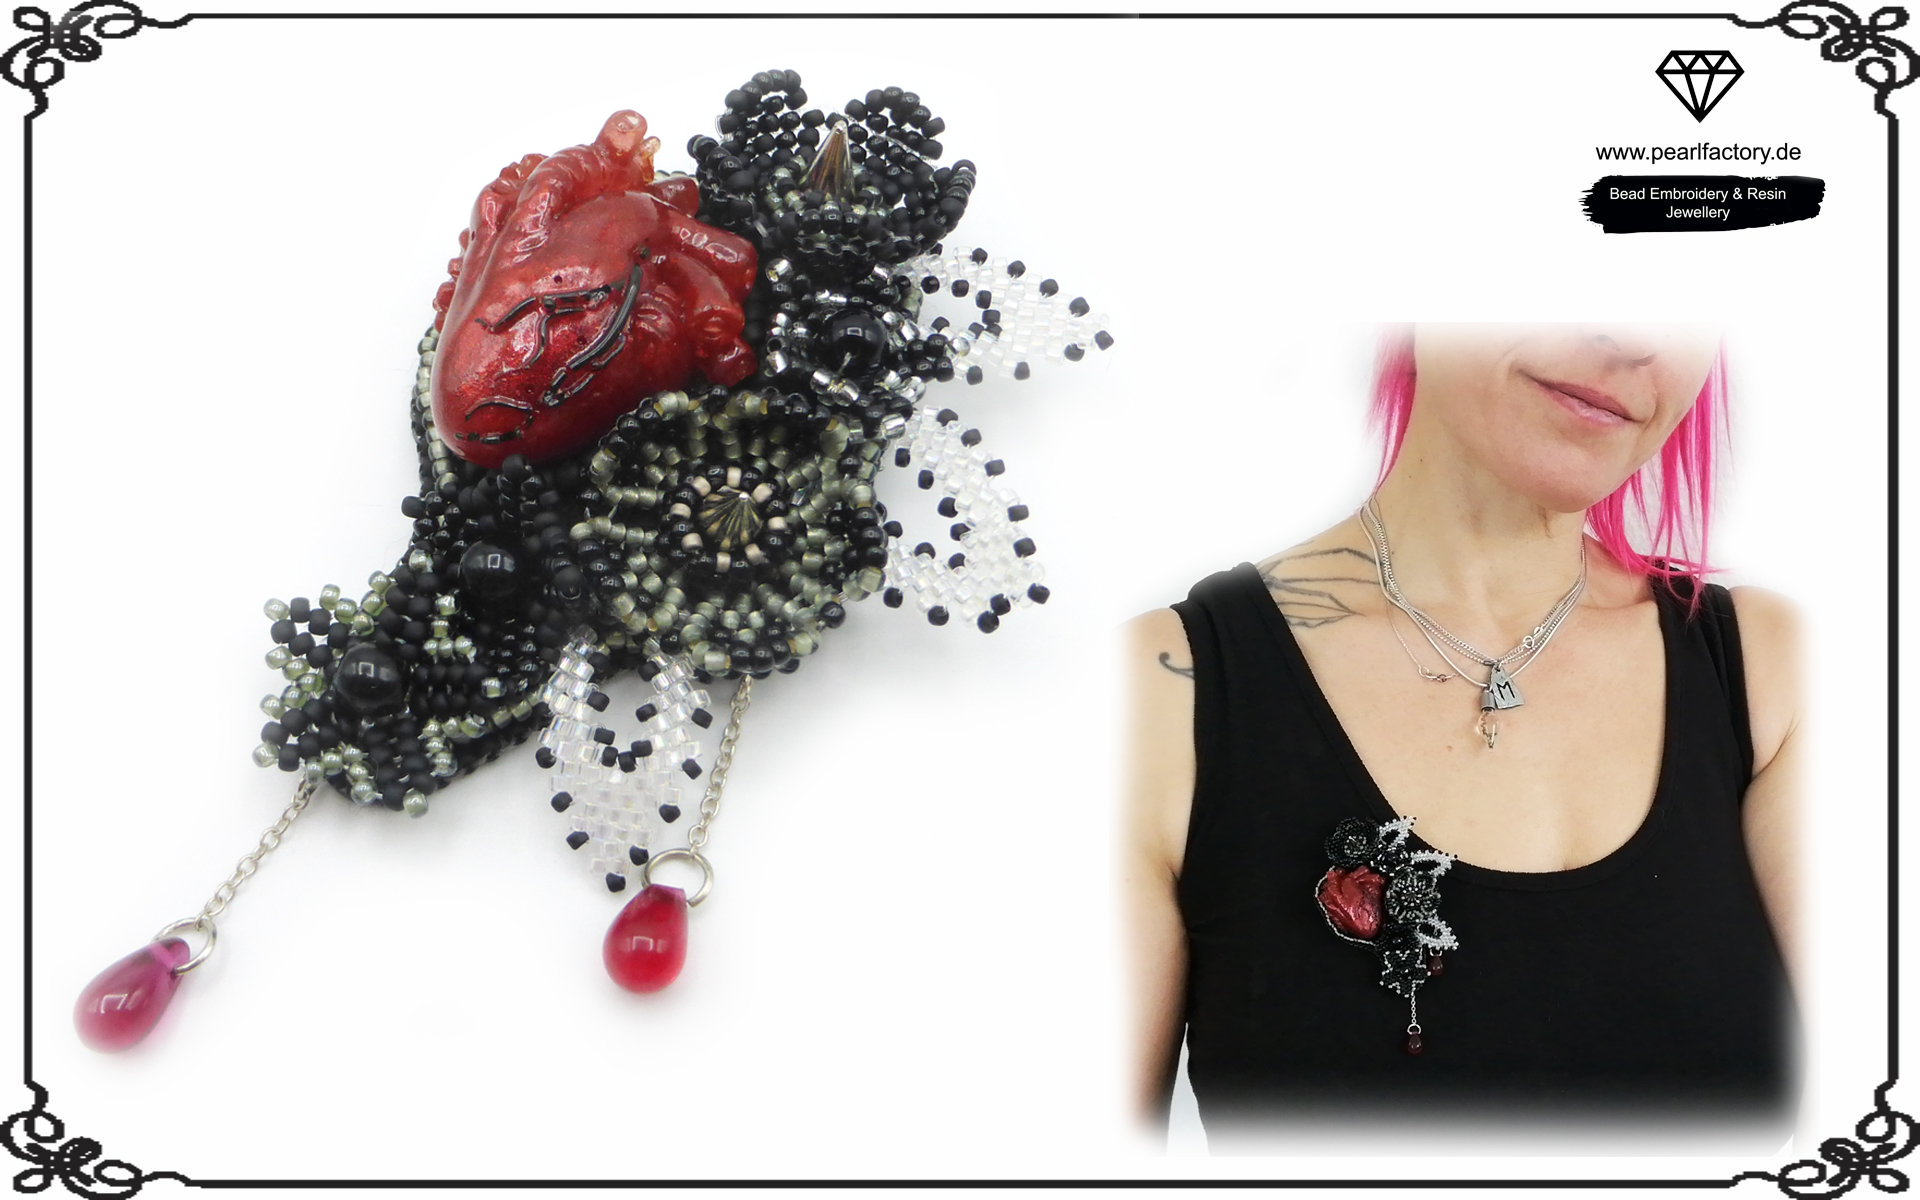 Eye-catching gothic brooch with a resin replica of a human heart.